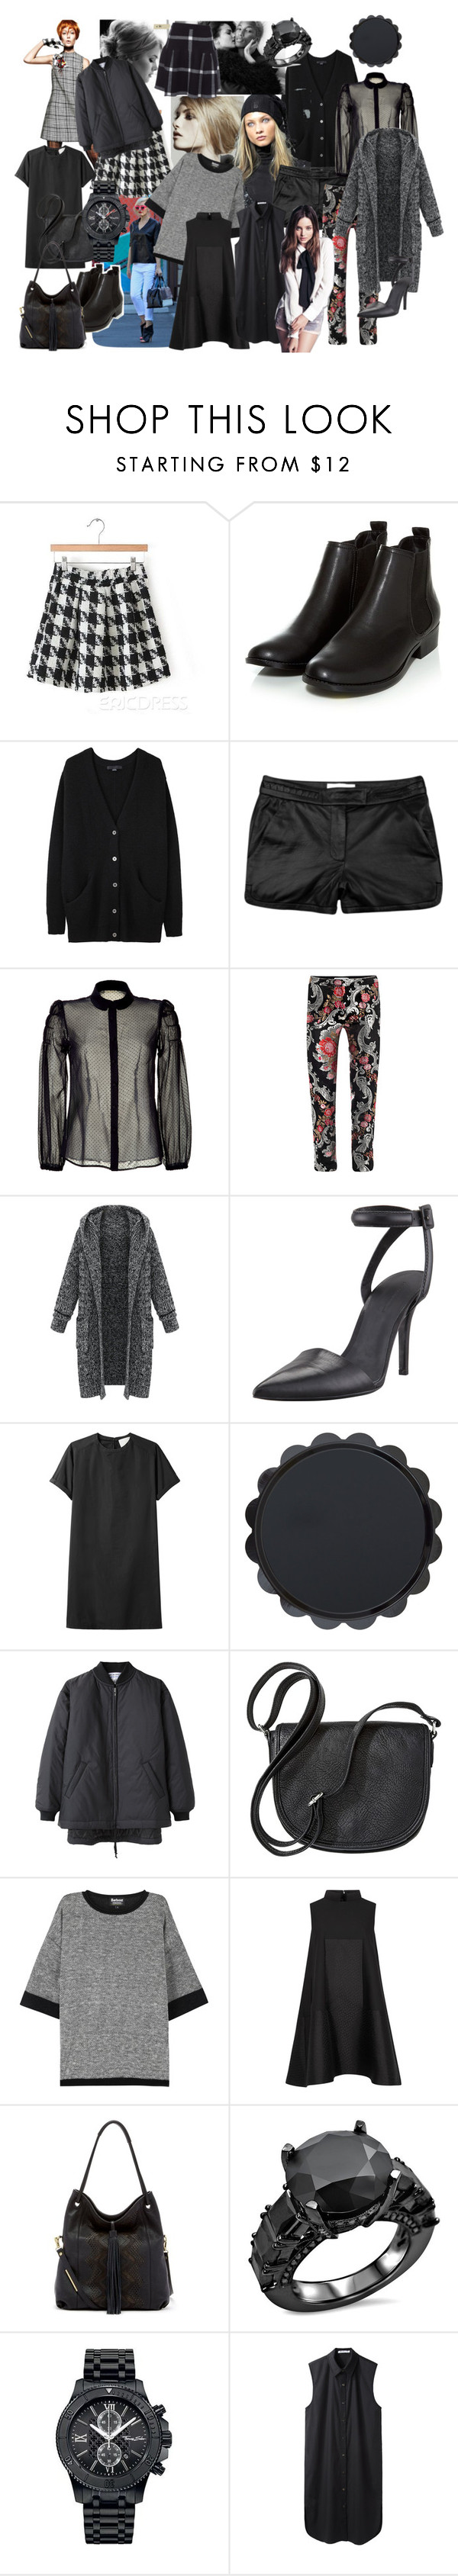 """B l a c k M o d"" by julietv ❤ liked on Polyvore featuring Alexander Wang, Ralph Lauren, A.L.C., RED Valentino, Osman, 3.1 Phillip Lim, Merona, Barbour International, Alexander McQueen and Ella Moss"